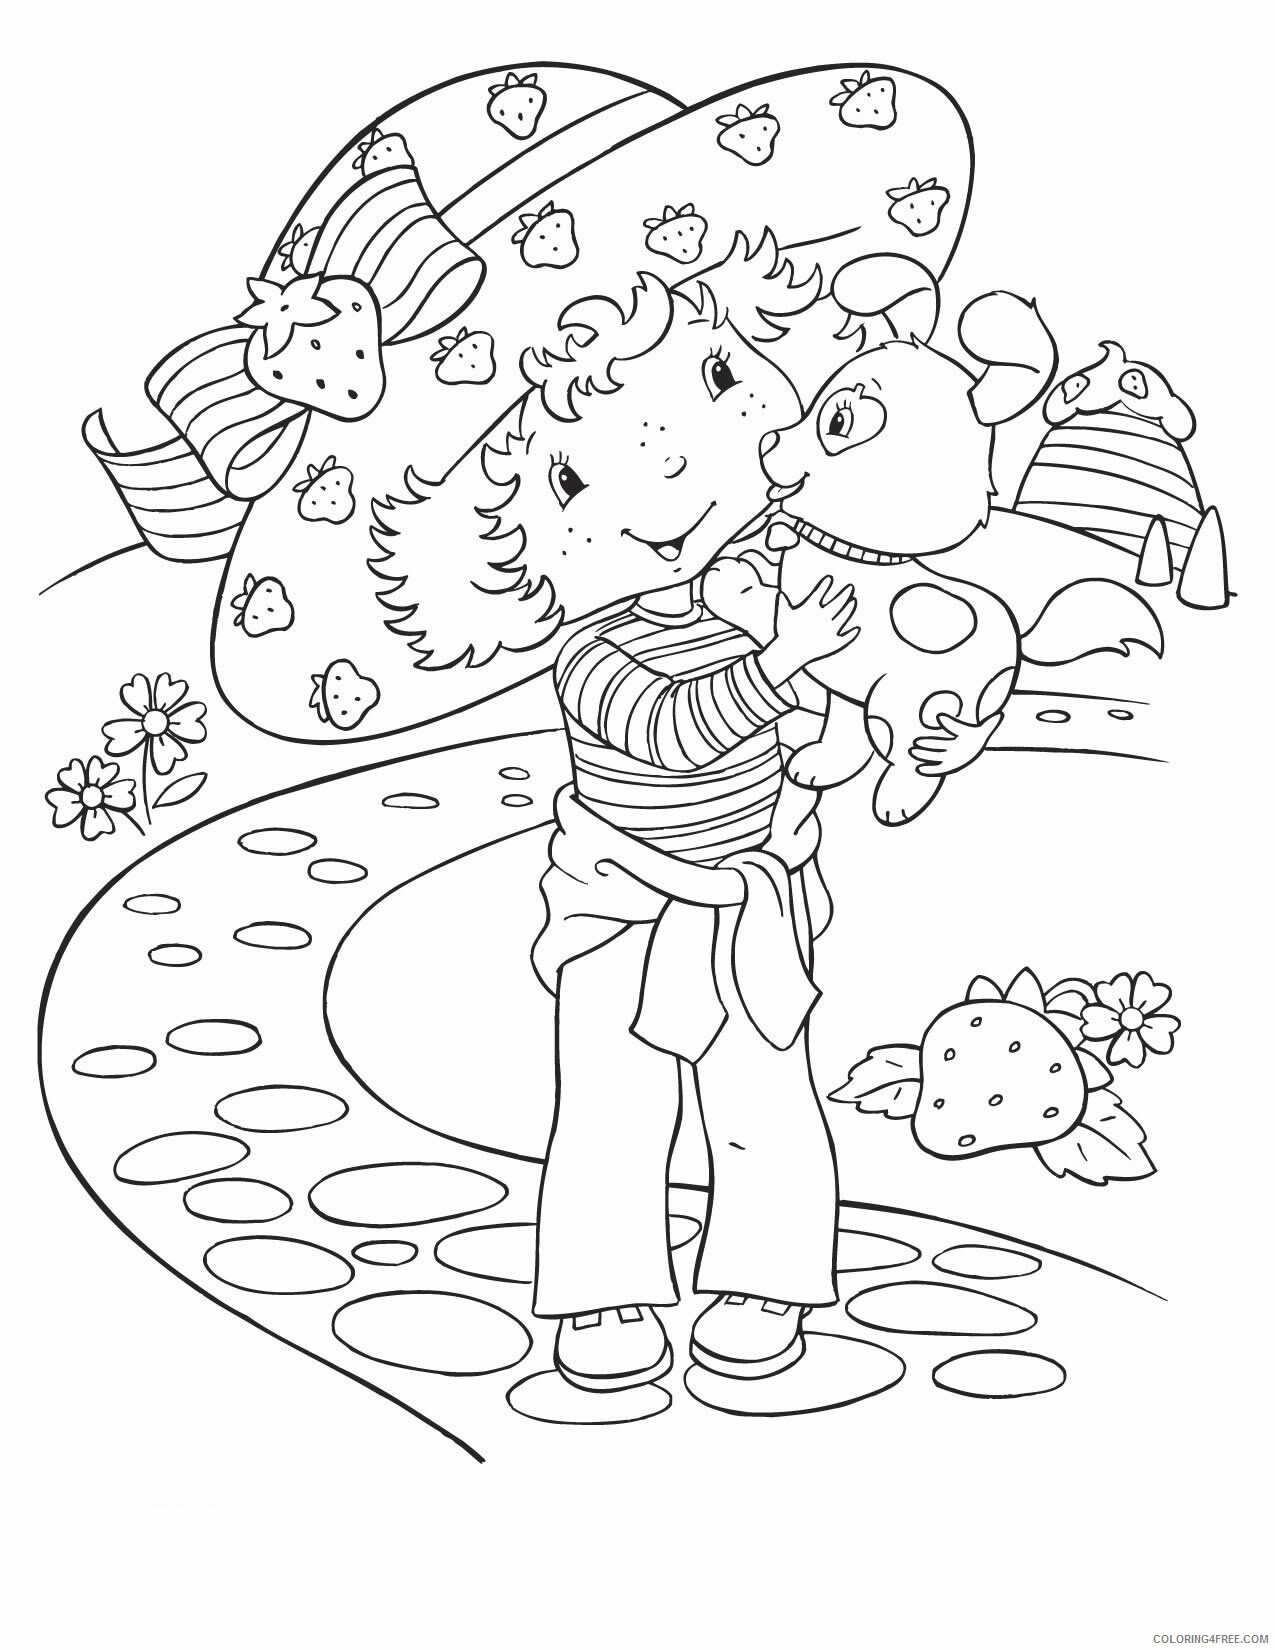 Strawberry Shortcake Coloring Pages TV Film Printable 2020 08098 Coloring4free